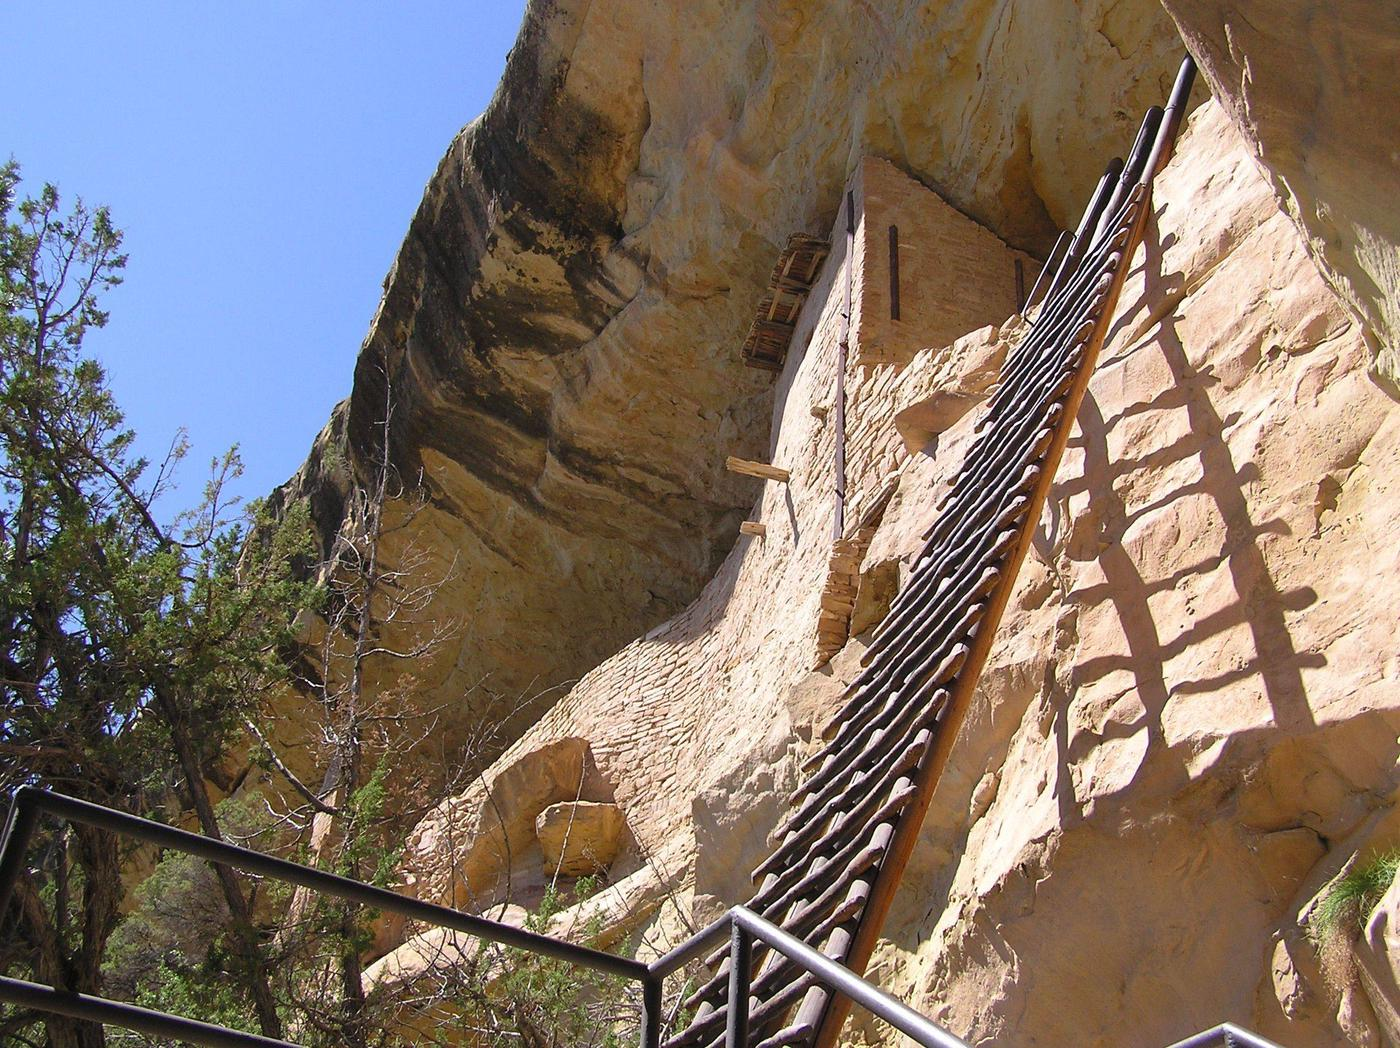 32-foot wooden ladder leaning on cliff wall32-foot entrance ladder used to enter Balcony House.